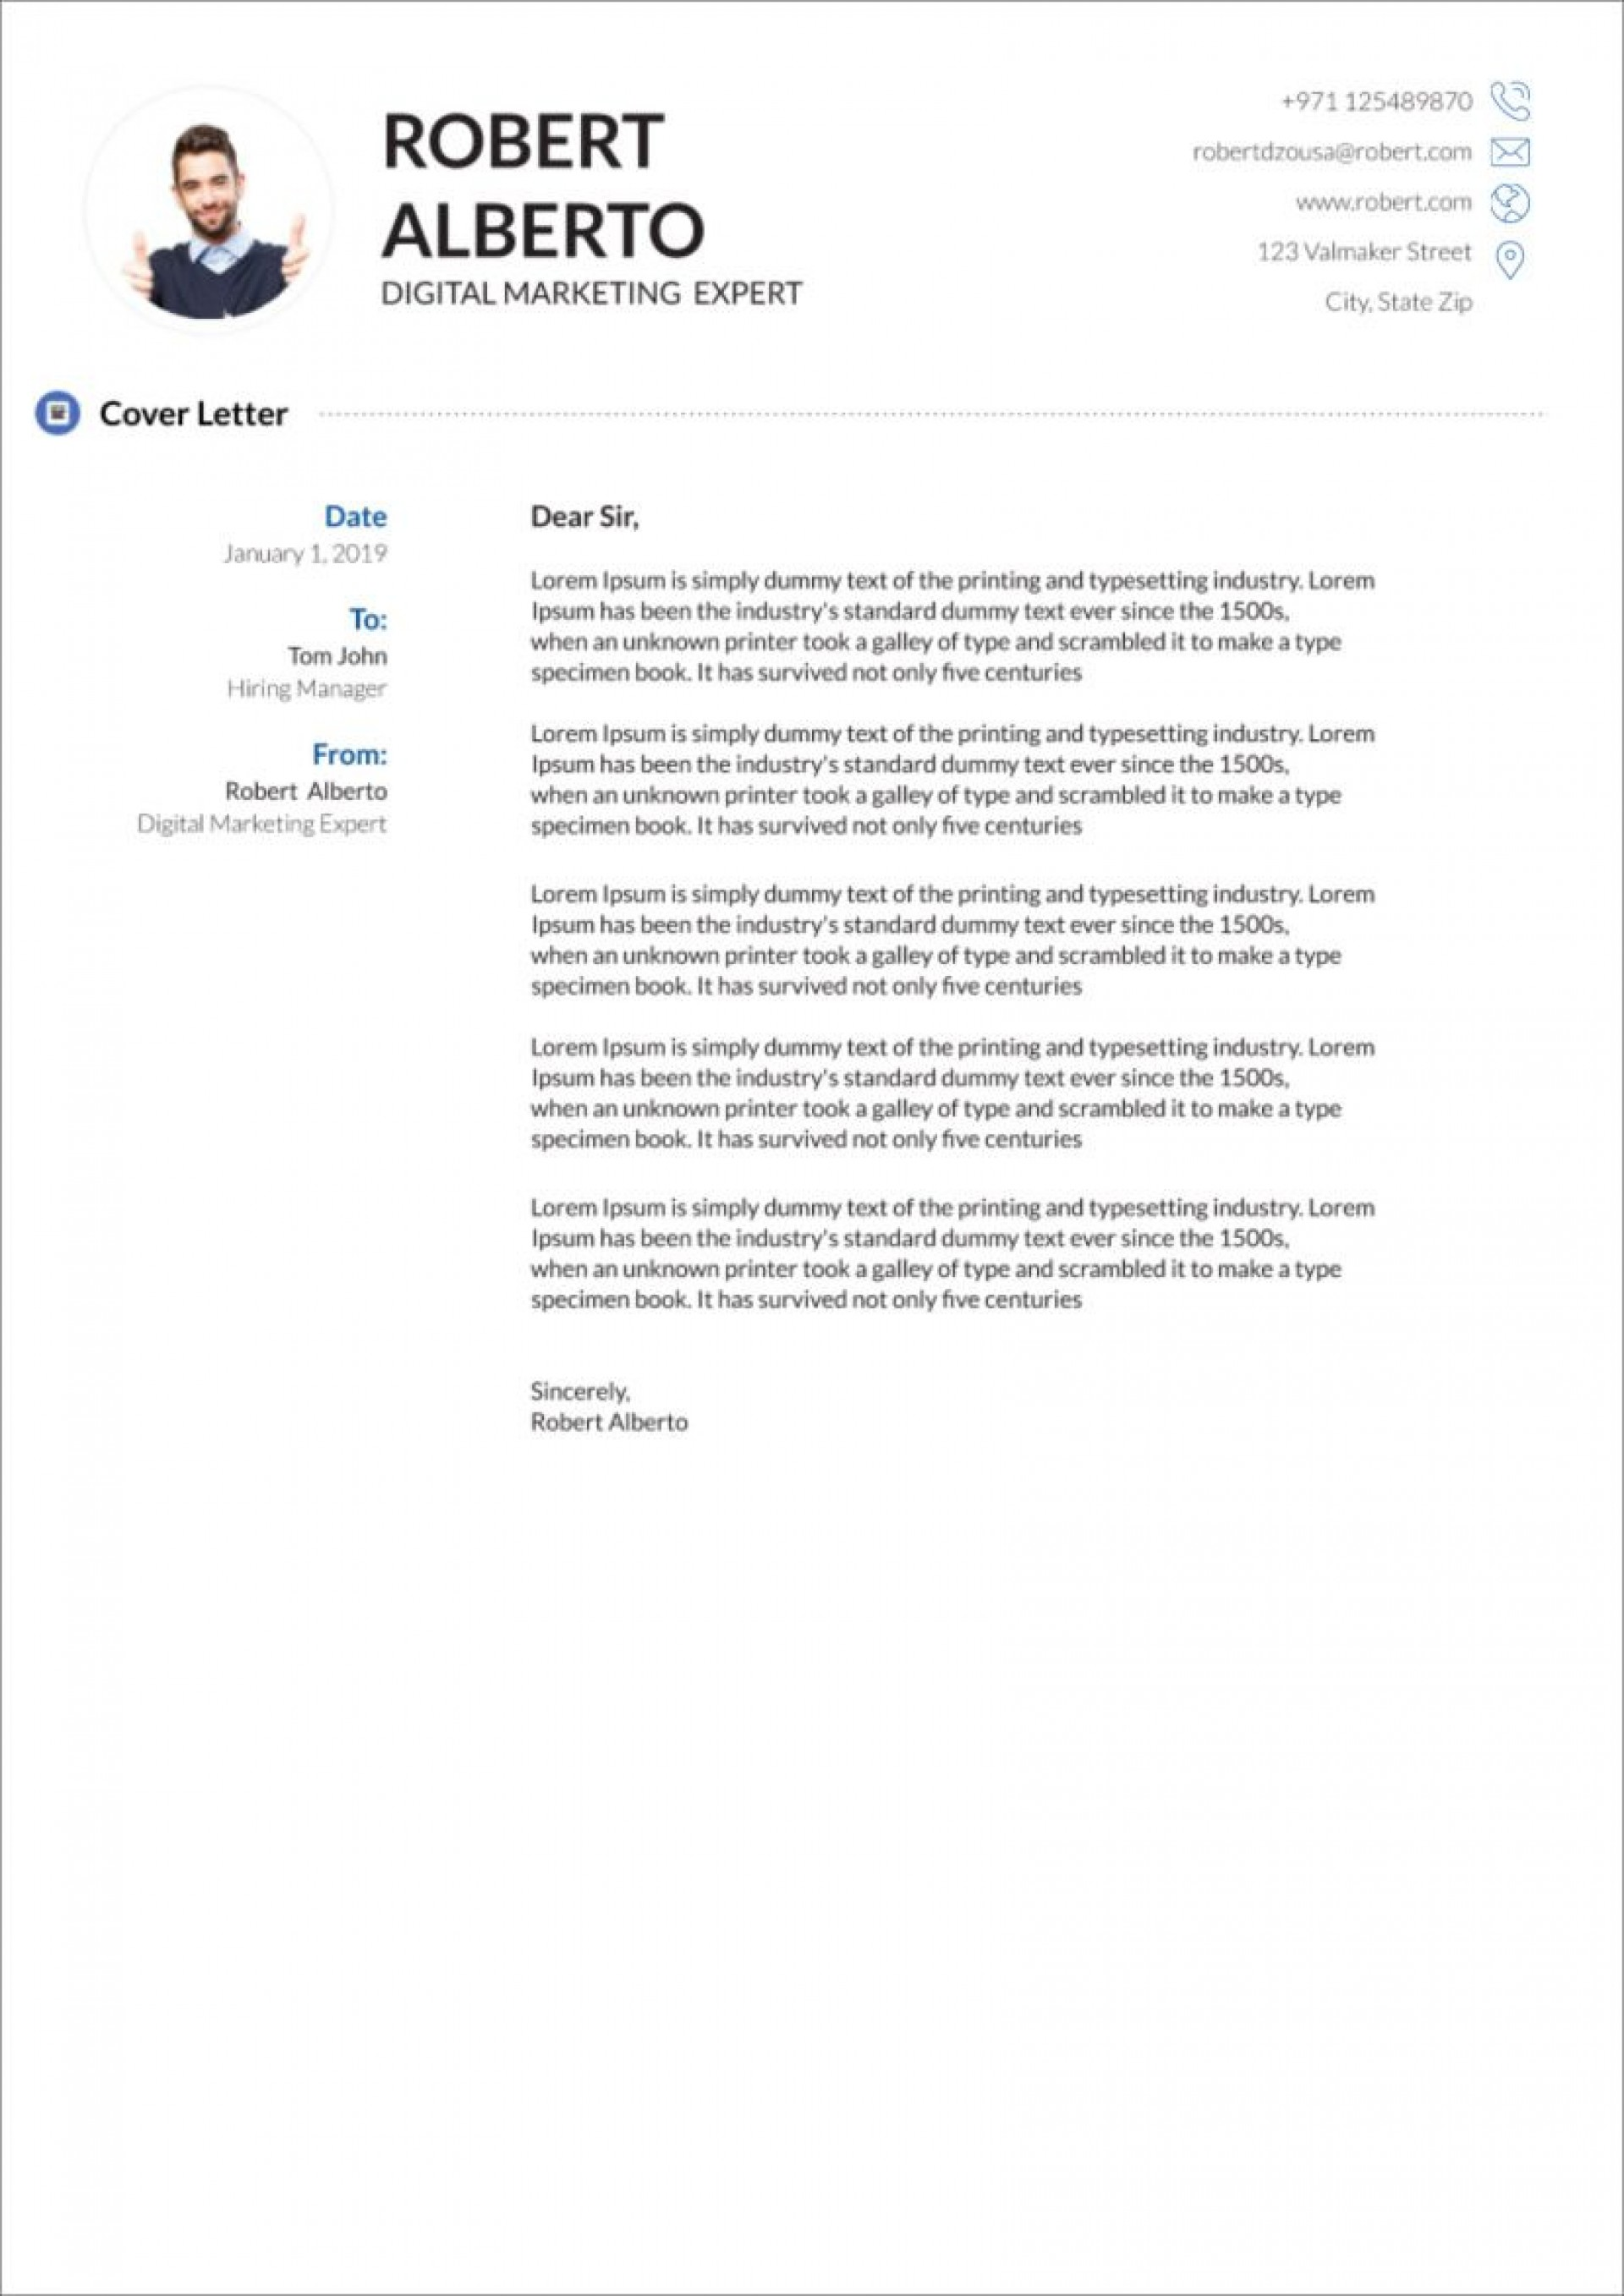 003 Fascinating Cover Letter Free Template Photo  Download Word Doc1920